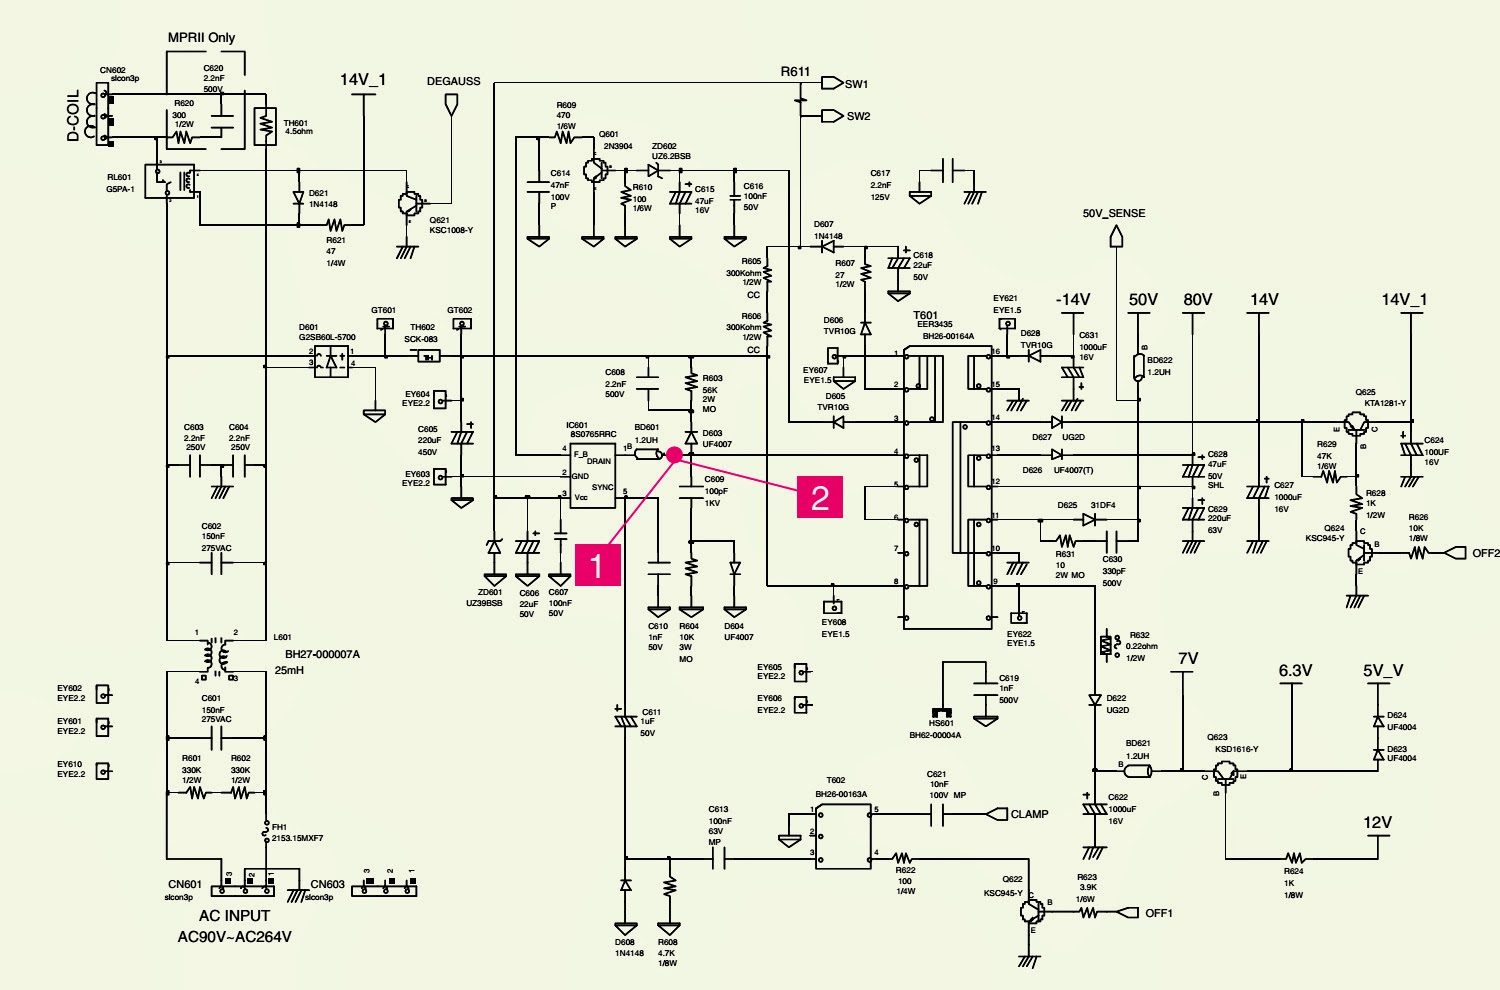 vizio tv input diagram wiring a double light switch for samsung main board free engine